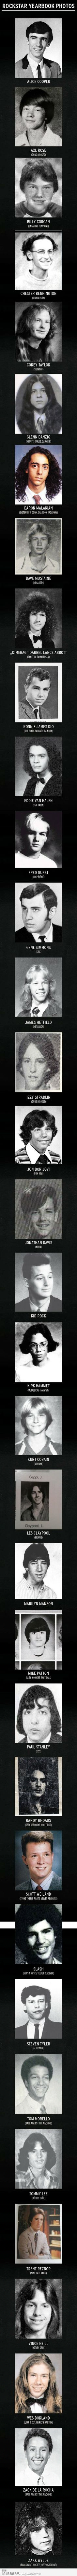 Rockstar Highschool Yearbook Photos    @Tracey Andrew